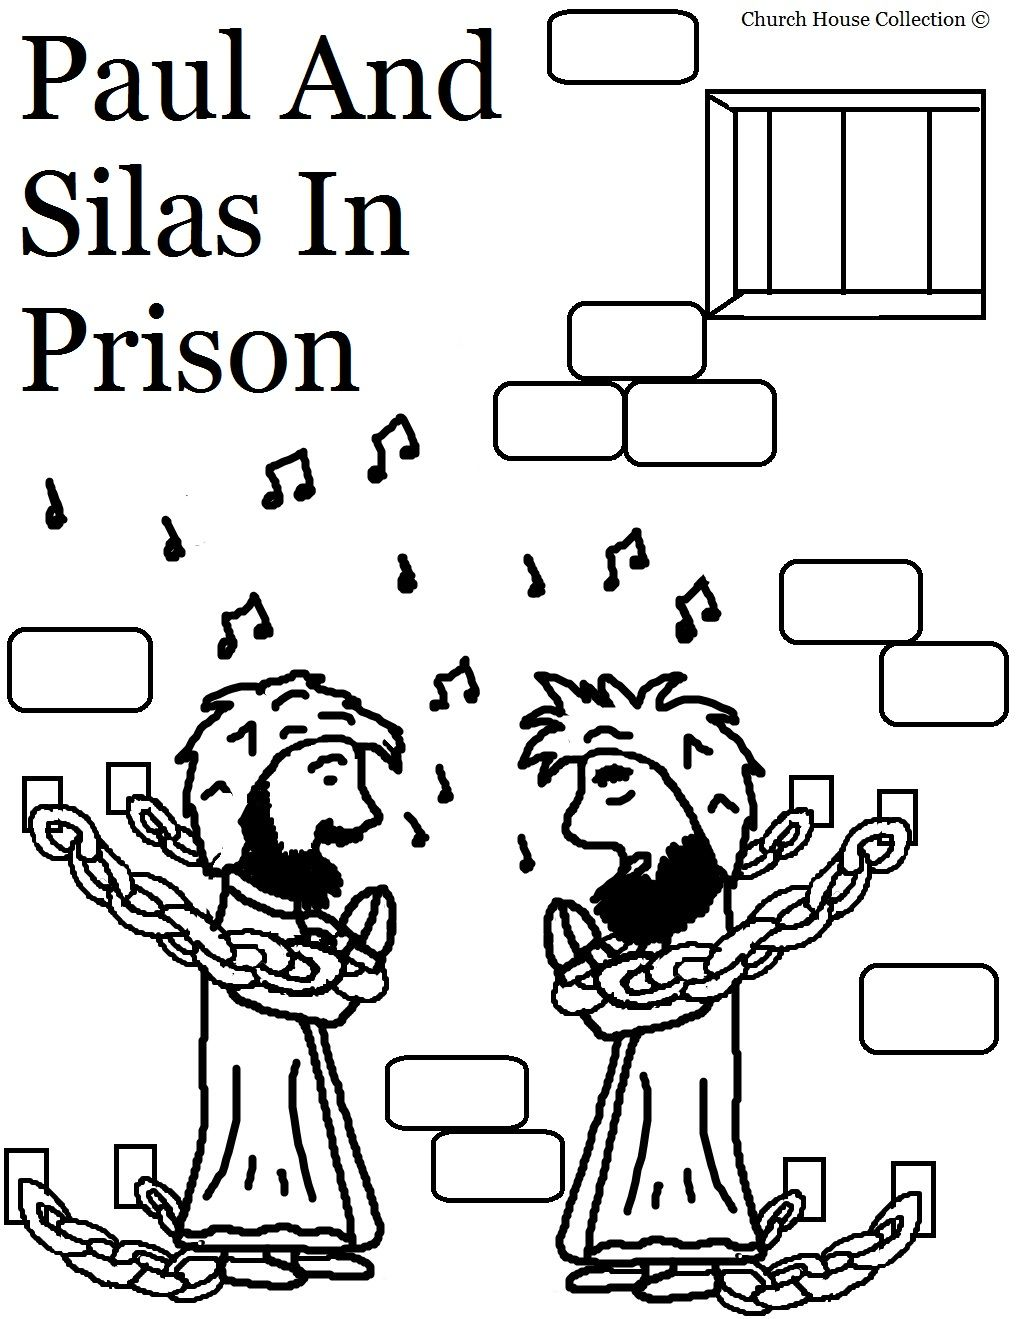 Paul And Silas Coloring Page 2 Jpg 1 019 1 319 Pixels Sunday